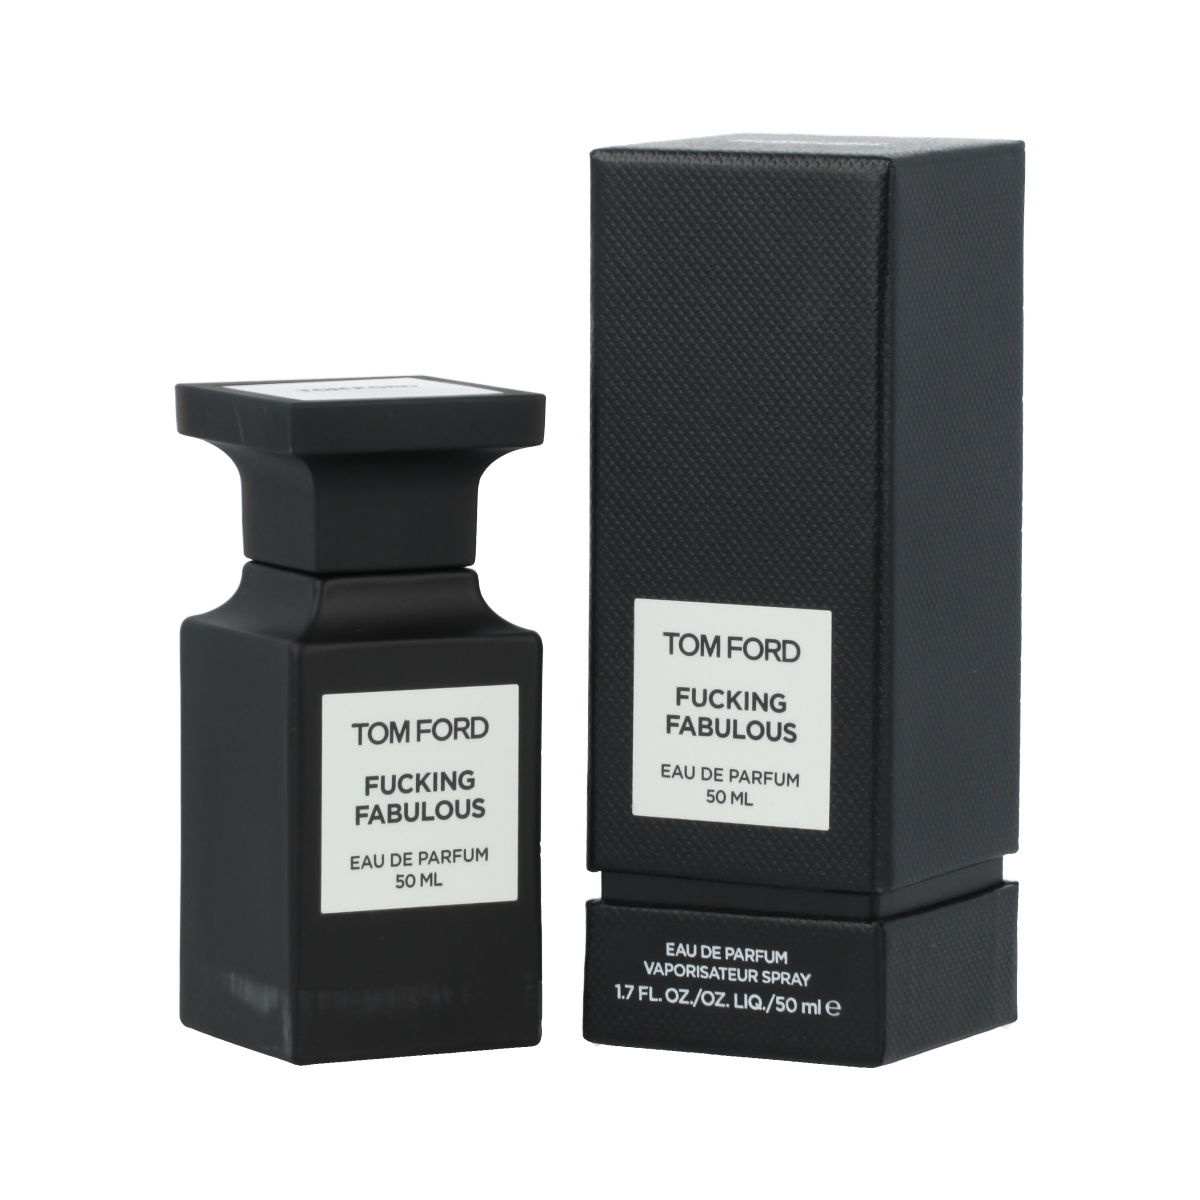 Tom Ford Fucking Fabulous Eau De Parfum 50 ml (unisex) 11143